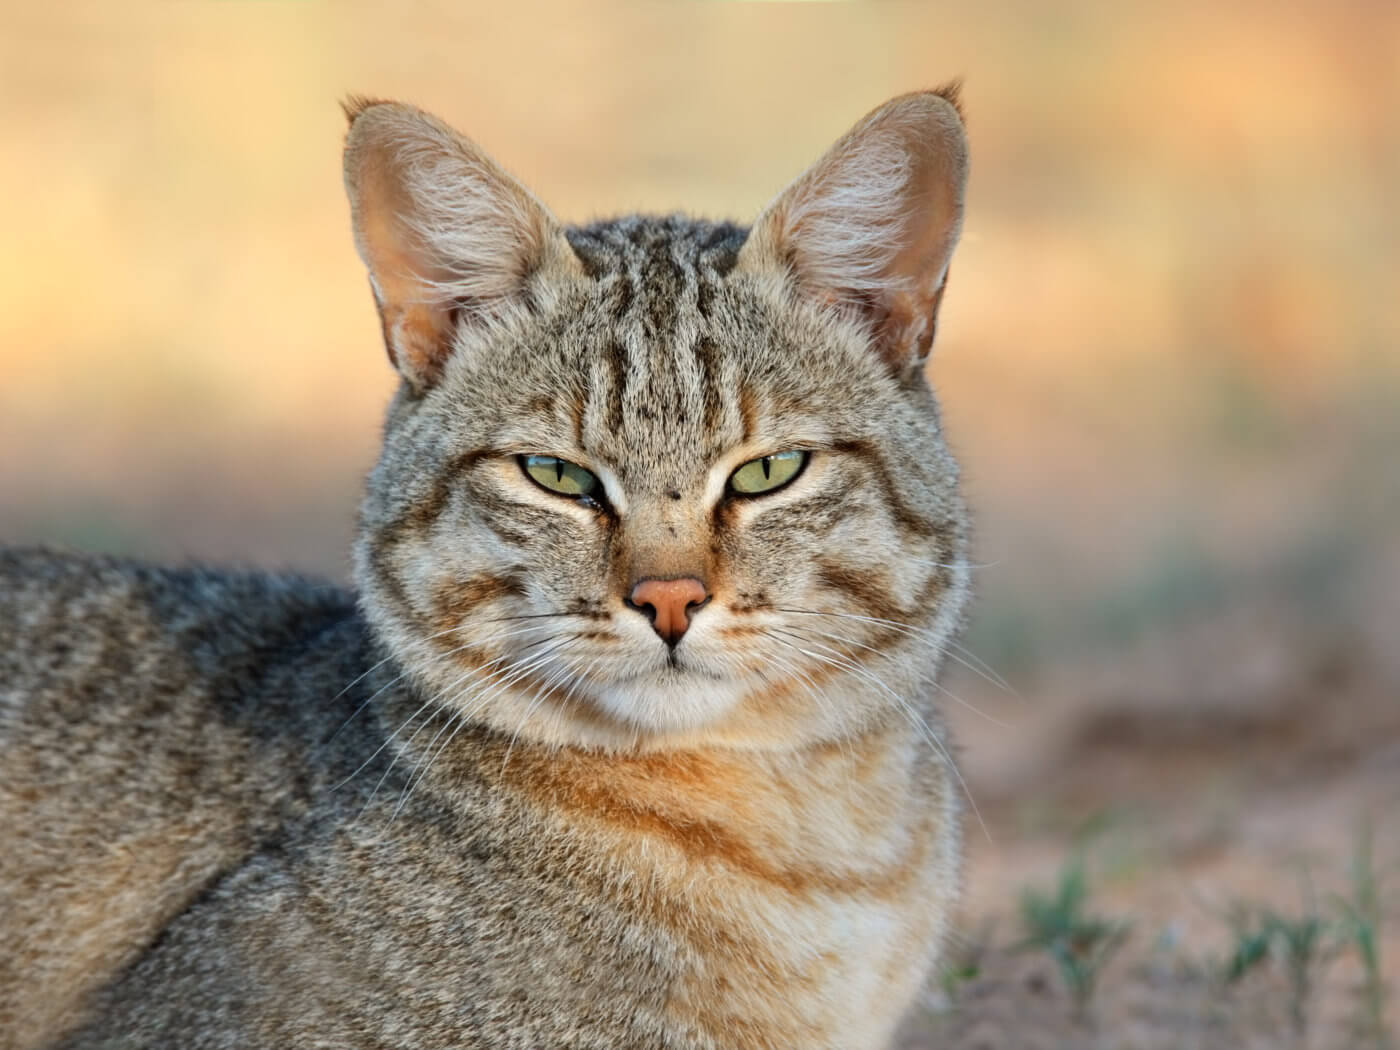 Portrait of an African wild cat (Felis silvestris lybica), Kalahari desert, South Africa